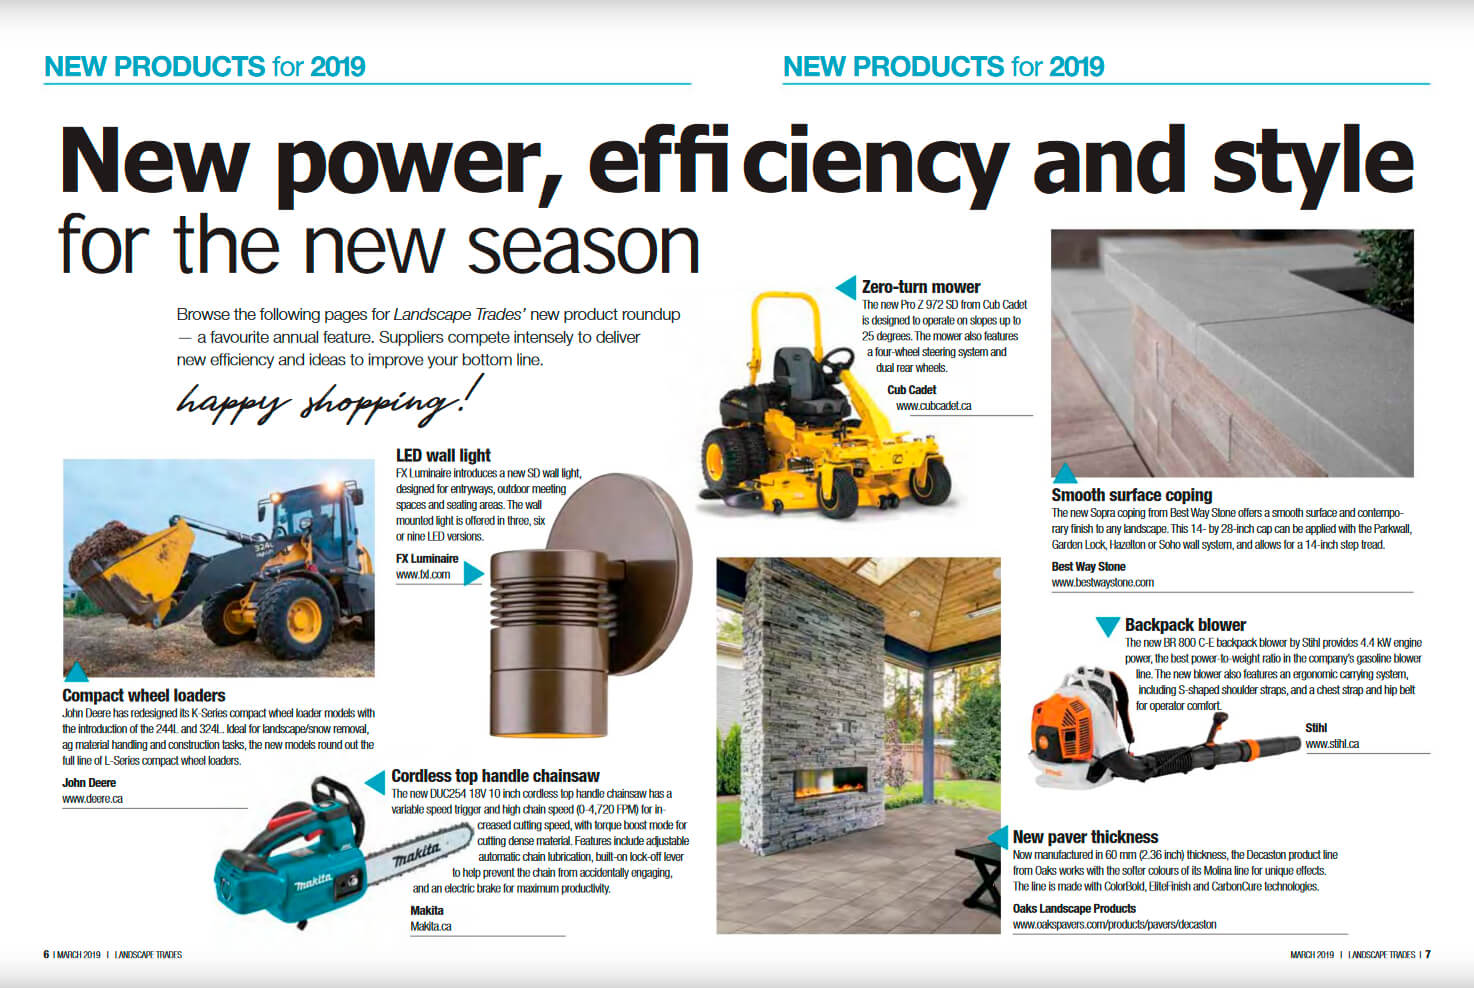 pages of a magazine showing new products